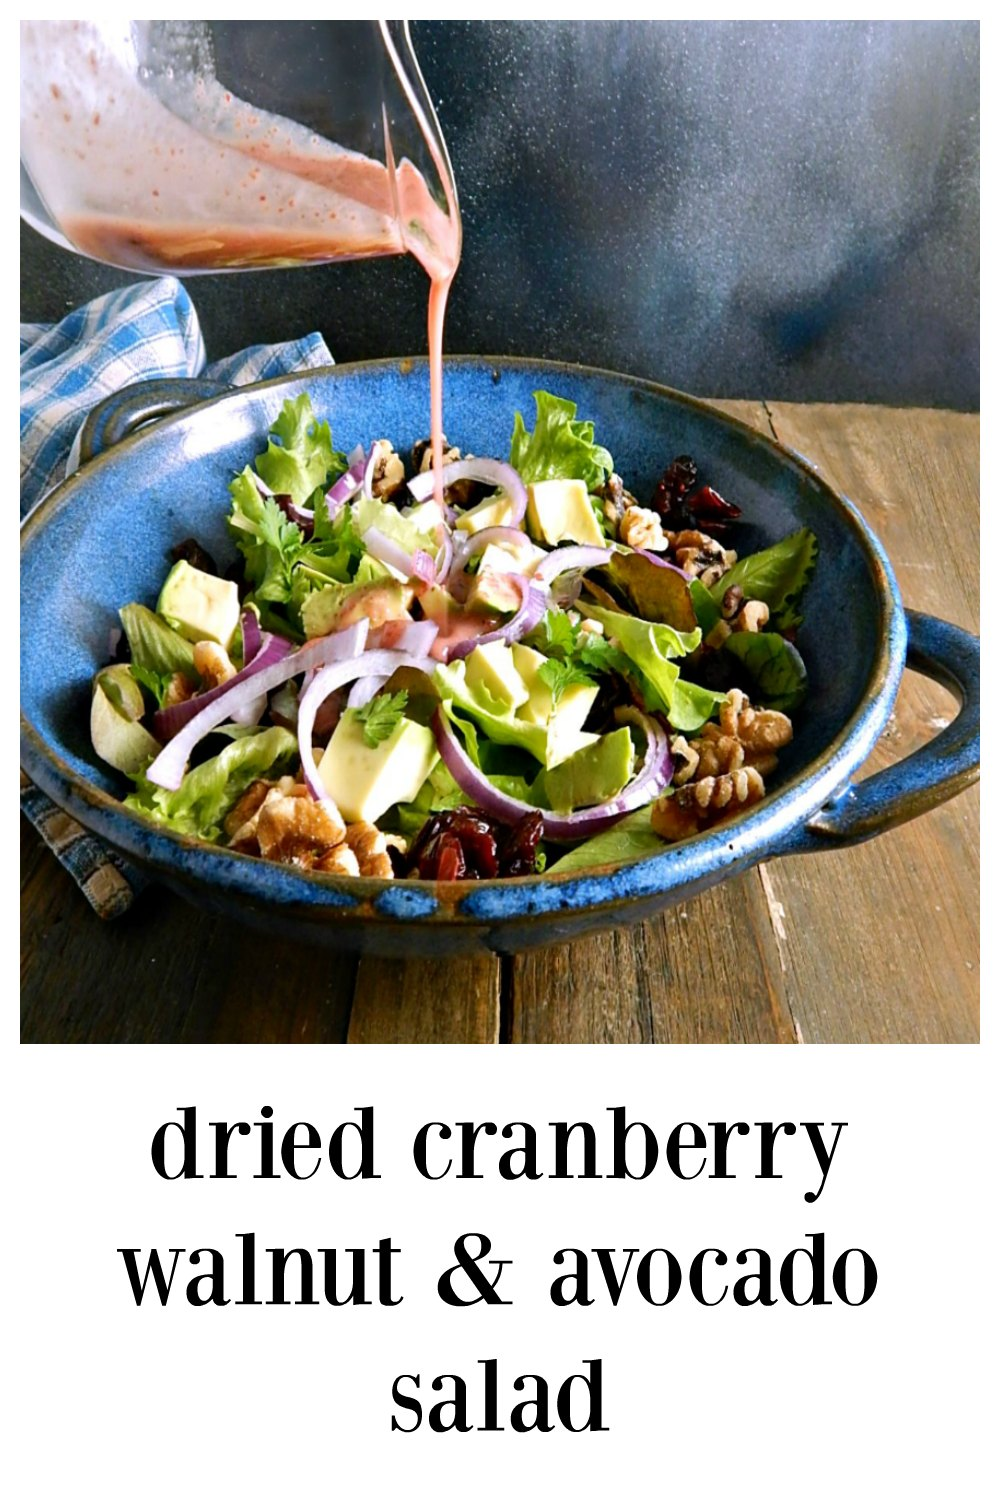 Dried Cranberry Walnut & Avocado Salad is super healthy (brainfood) but also delicious & elegant! Easy and perfect for a fall/winter dinner or holiday! The dressing, made with dried cranberries is unique & so delish you'll want to drink it! #WinterSalad #DriedCranberryWalnutAvocadoSalad #HolidaySalad